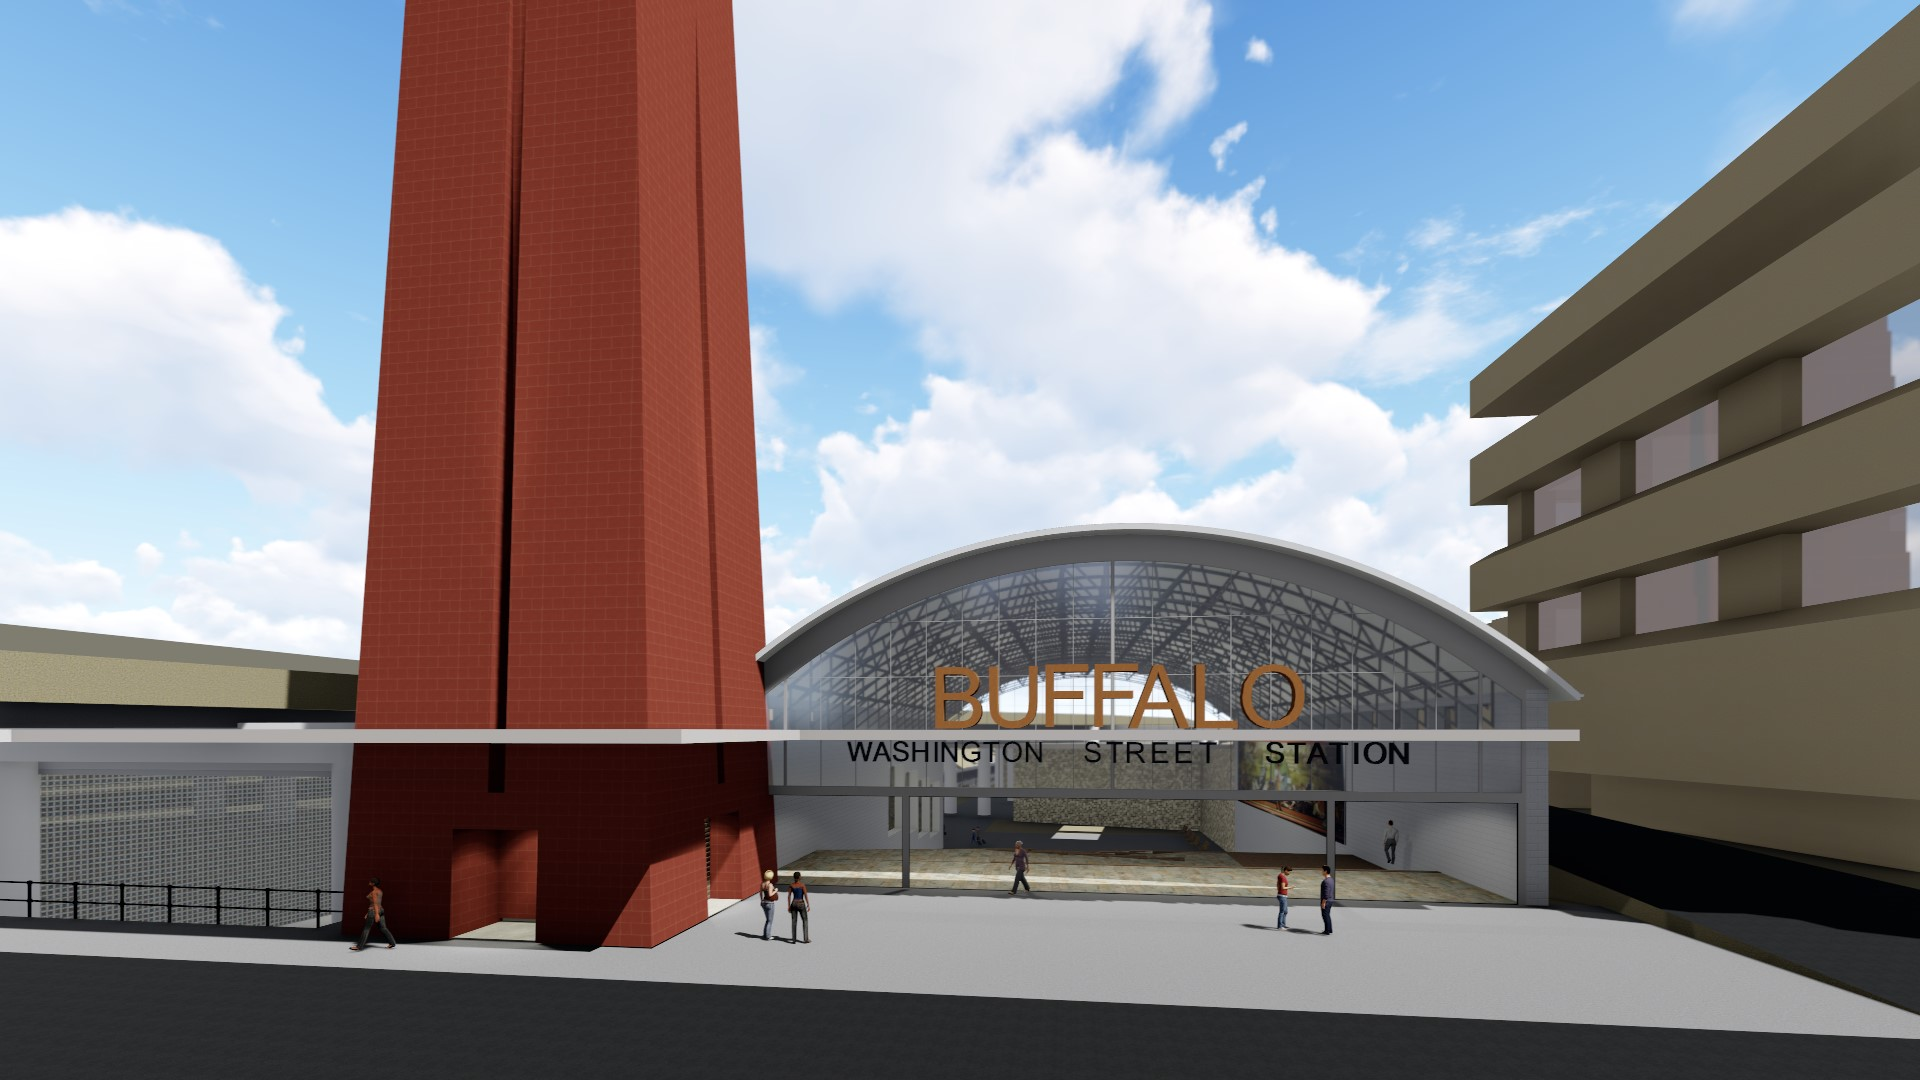 A rendering by Tim Tielman, of the Campaign for Greater Buffalo, of a proposed downtown train station.